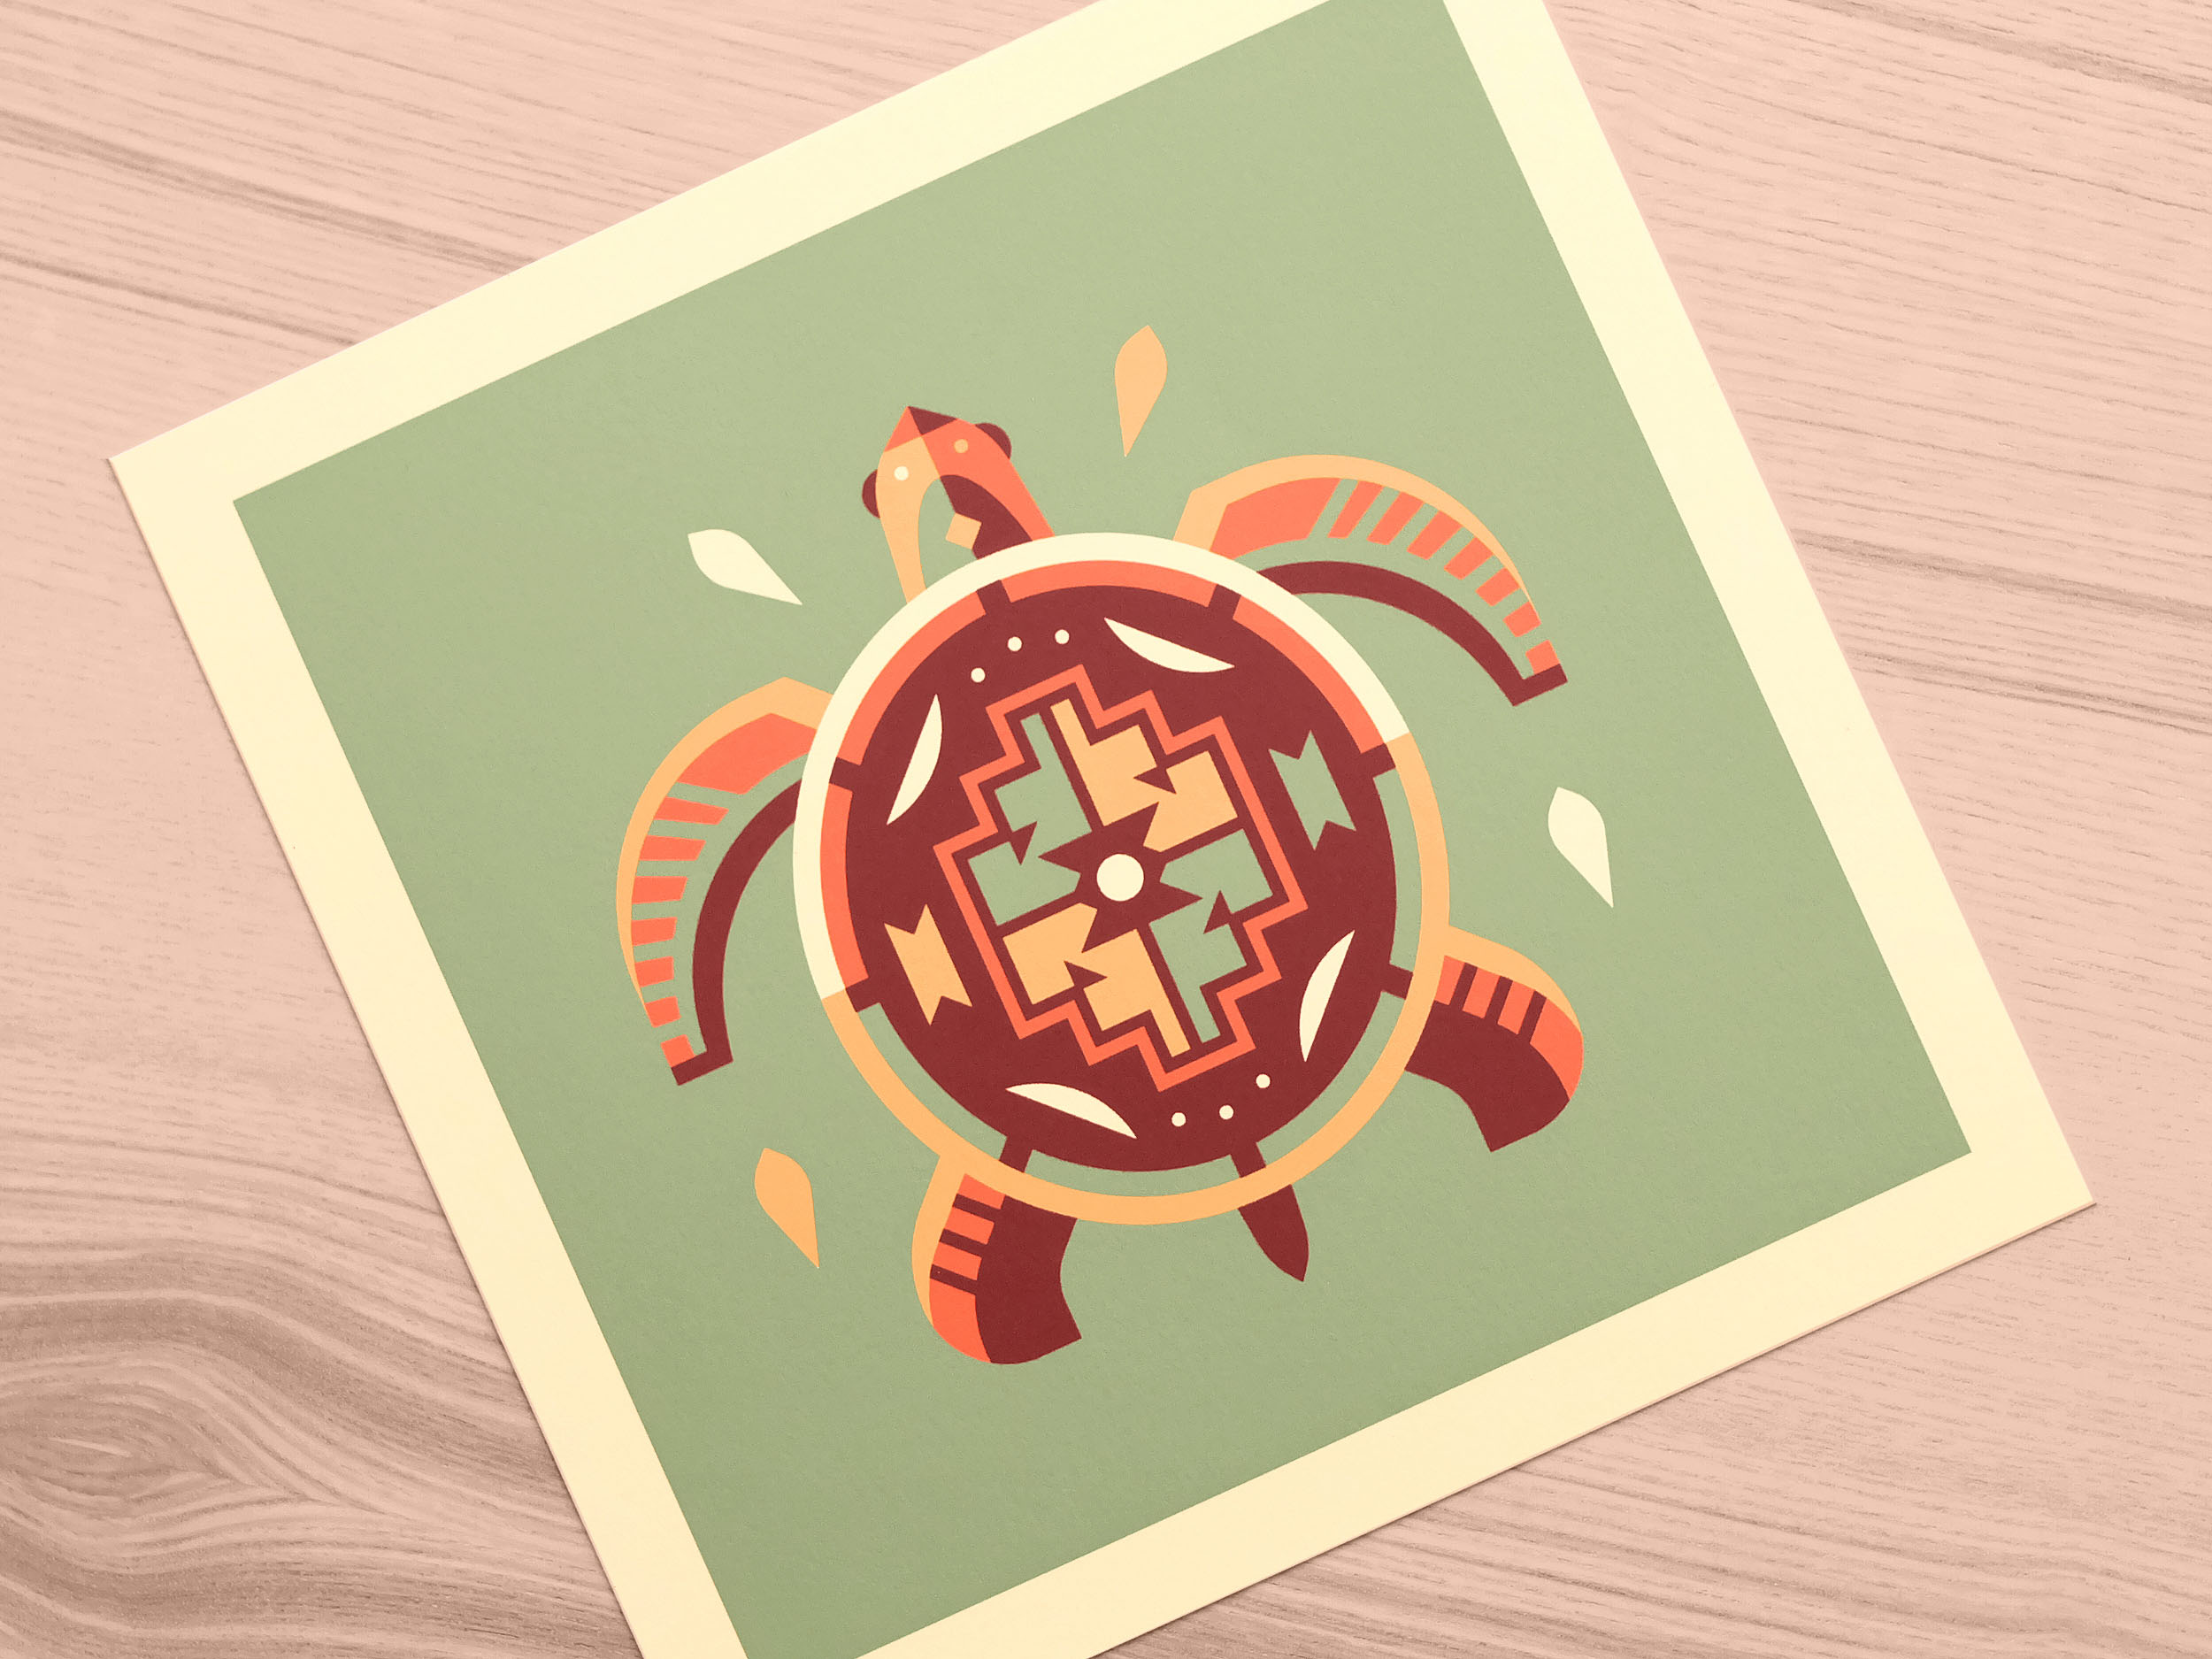 Turtle totem print photo by Matt Anderson and Canopy Design. Limited color, geometric pattern illustration with Navajo southwest art style.